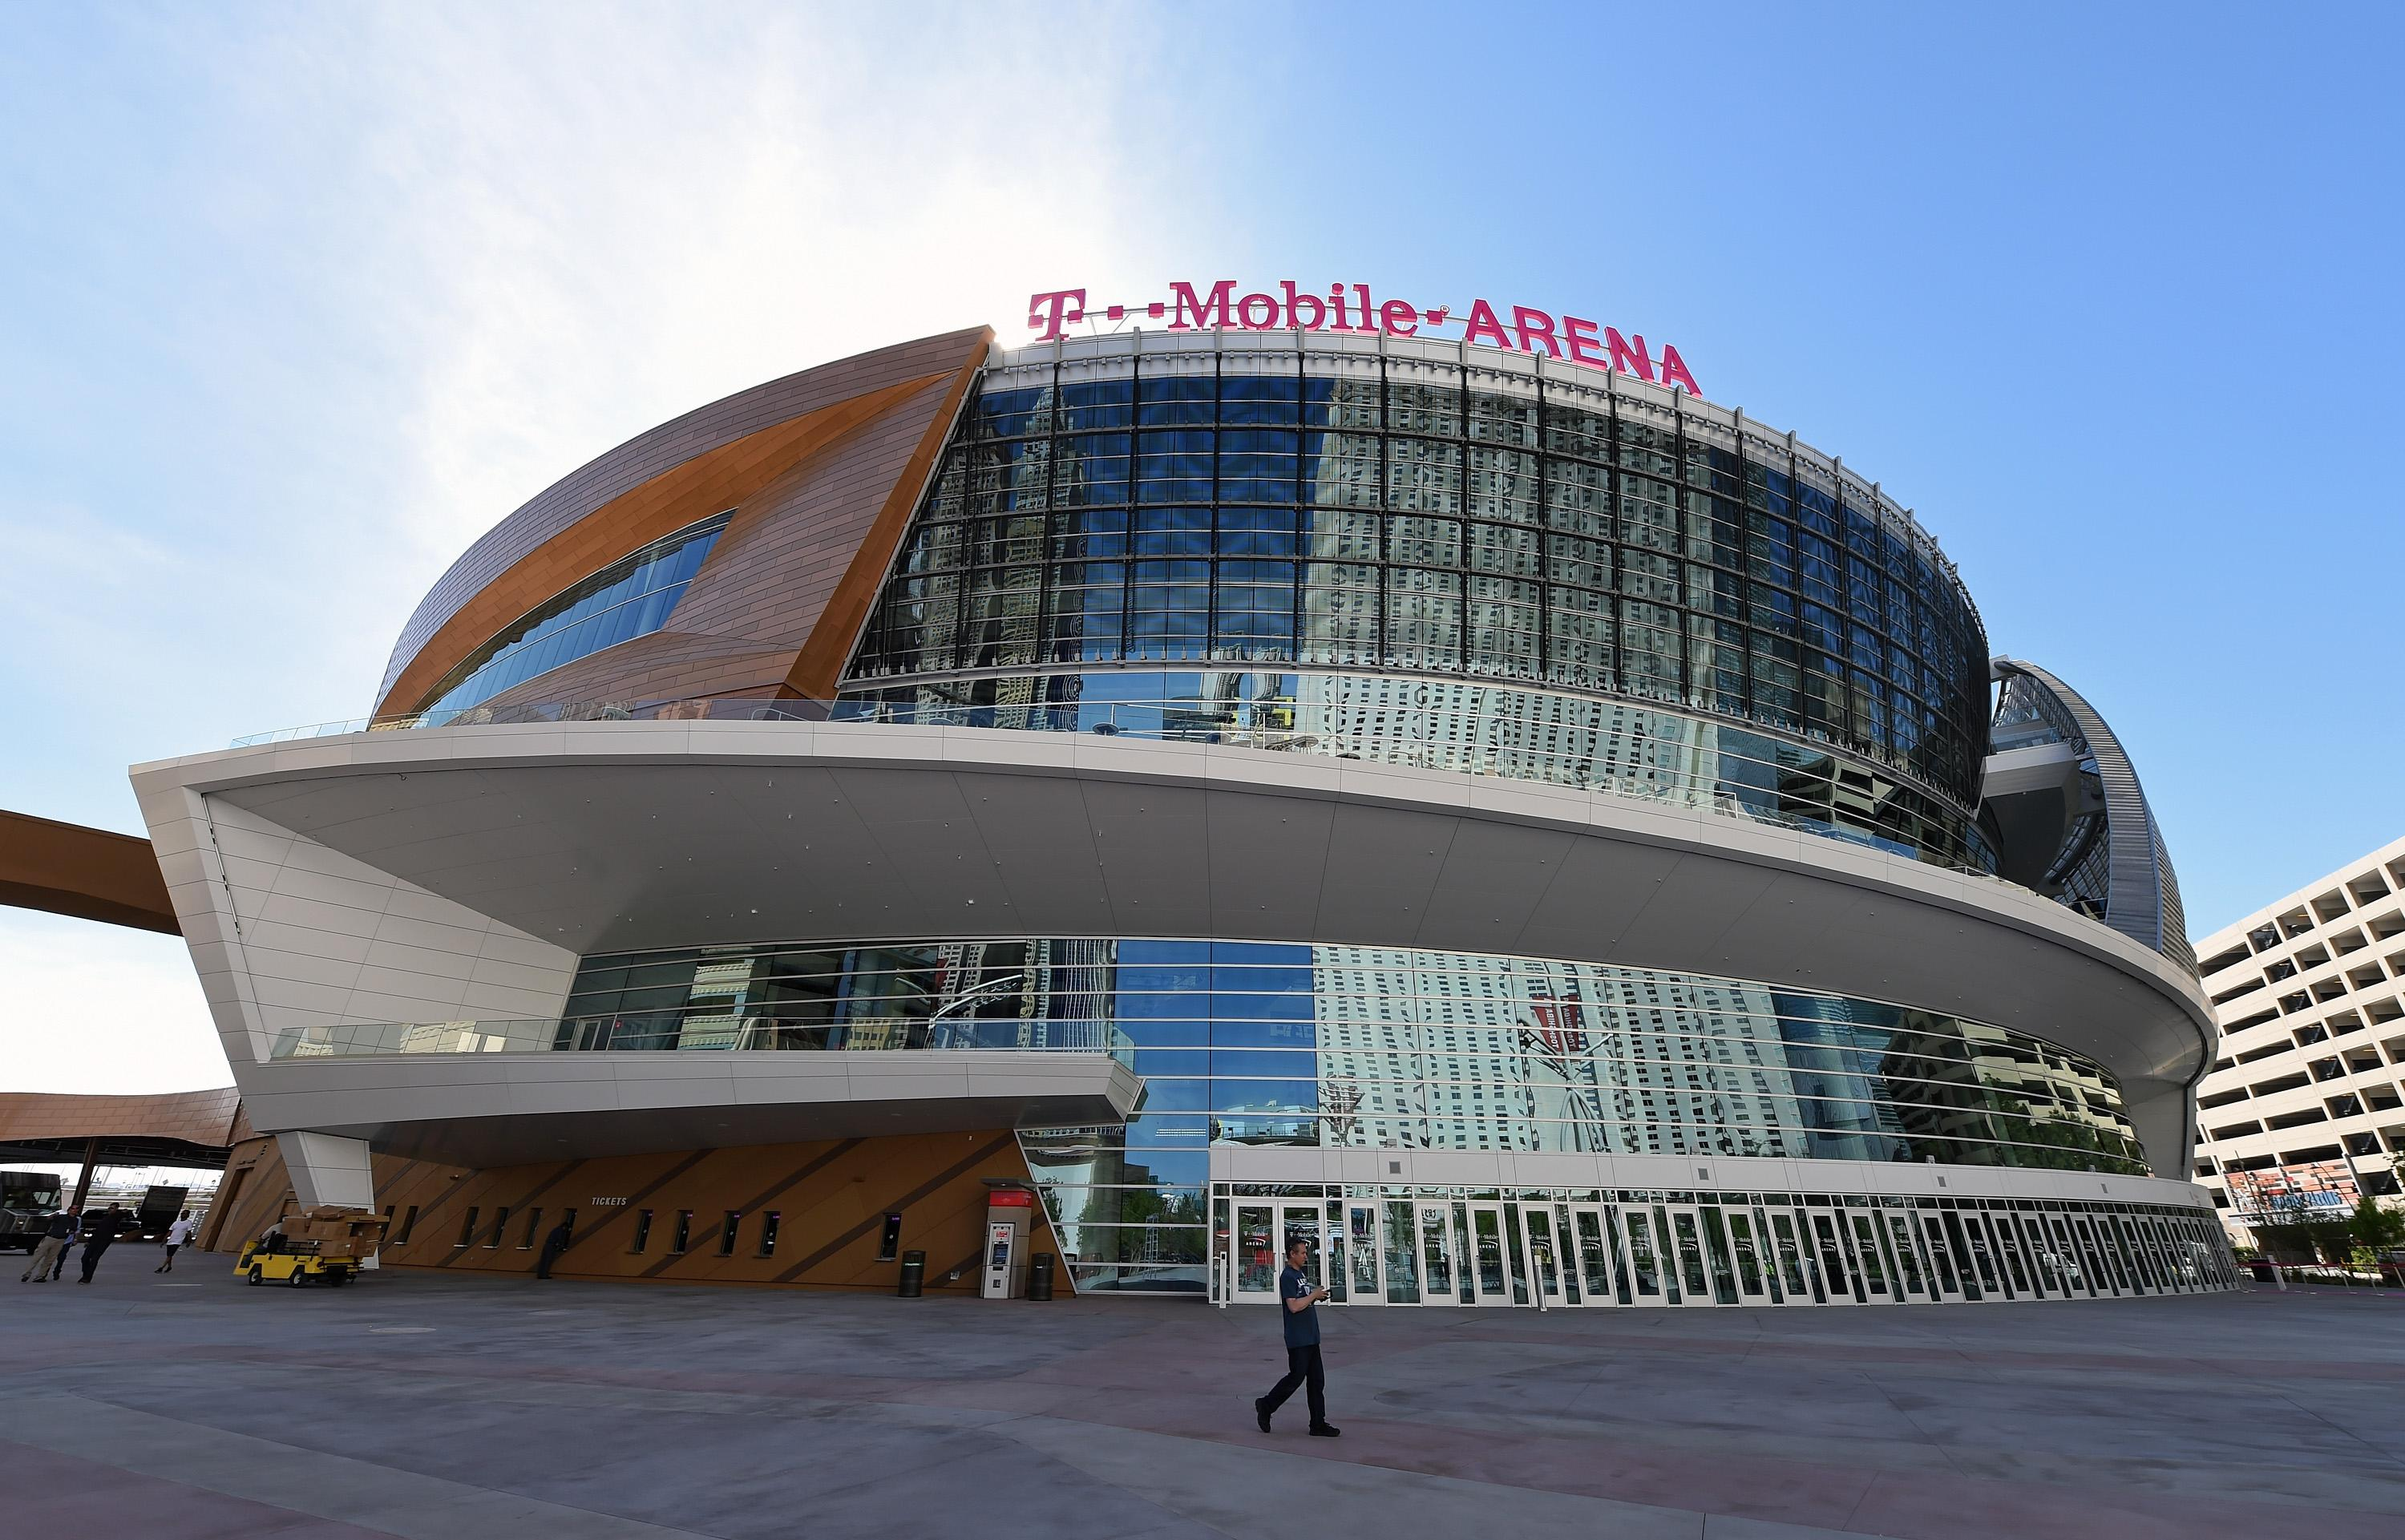 The T-Mobile Arena in Las Vegas has already been booked by Golden Boy Promotions for May 4 with Canelo expected to headline